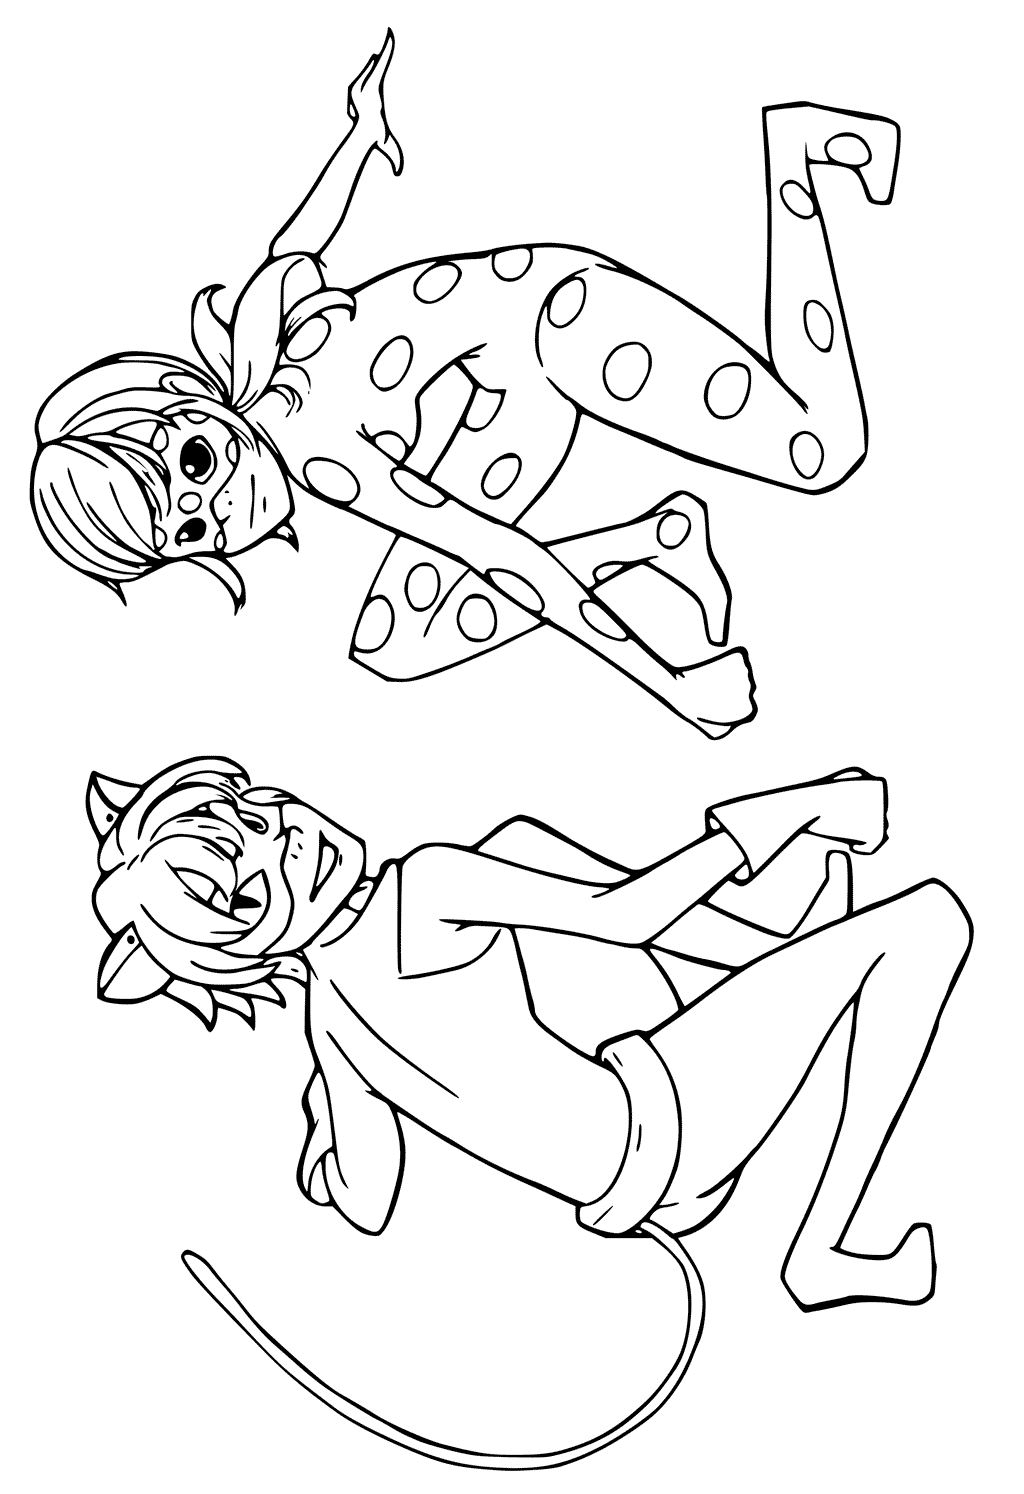 Kidsnfuncom  New coloring pages